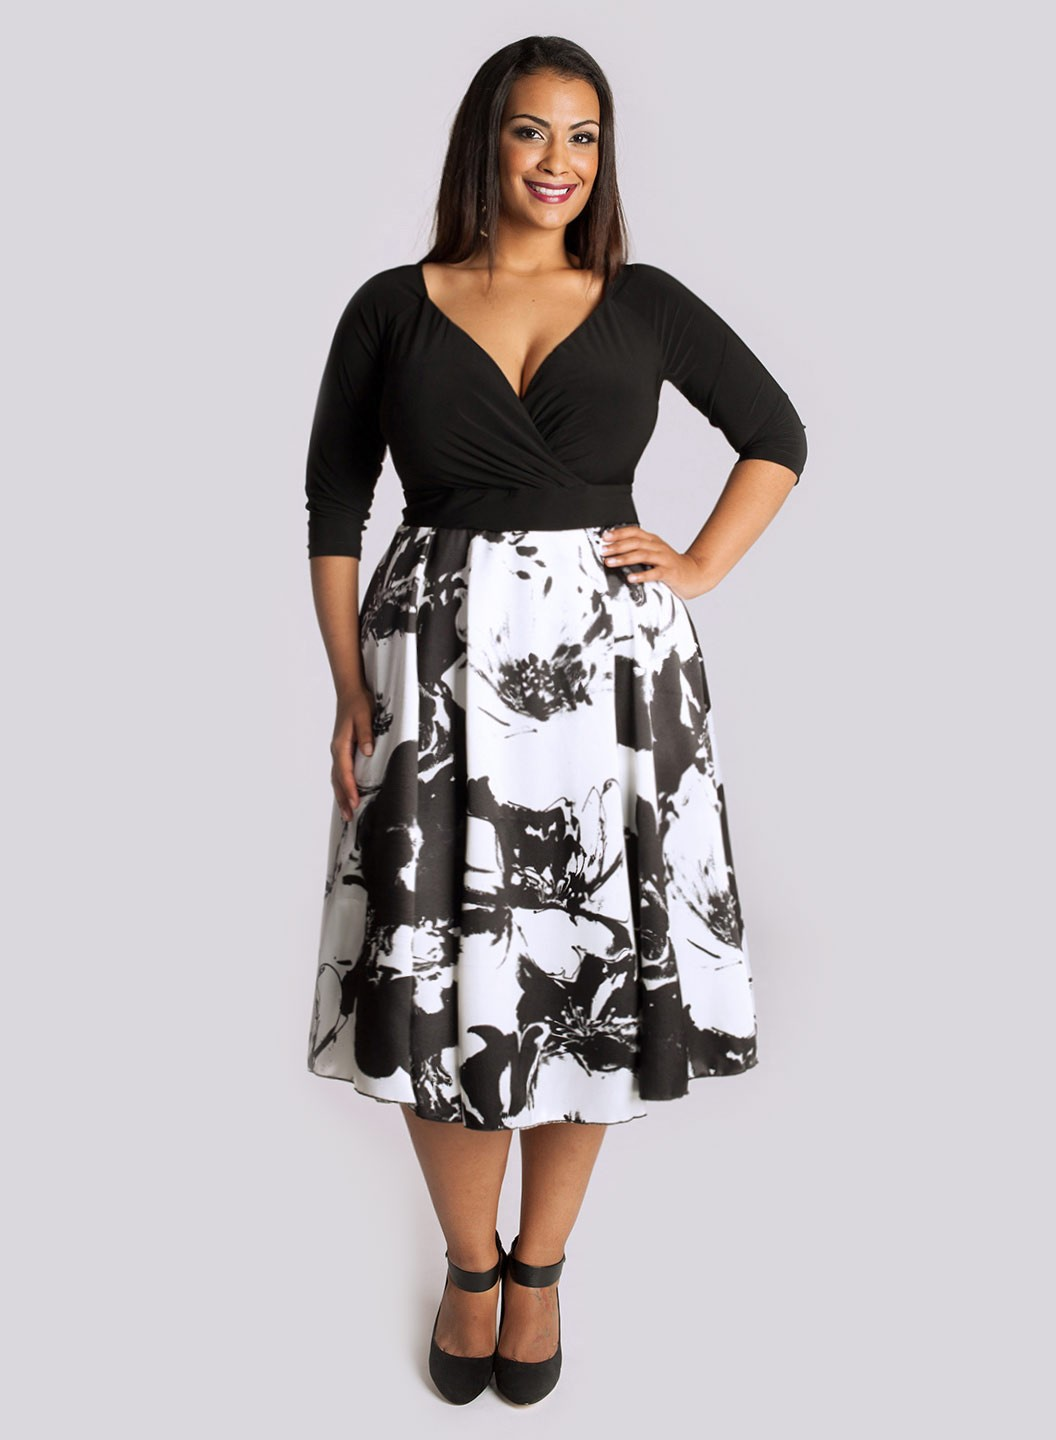 Plus Size Designer Clothing Online Inexpensive Plus Size Designer